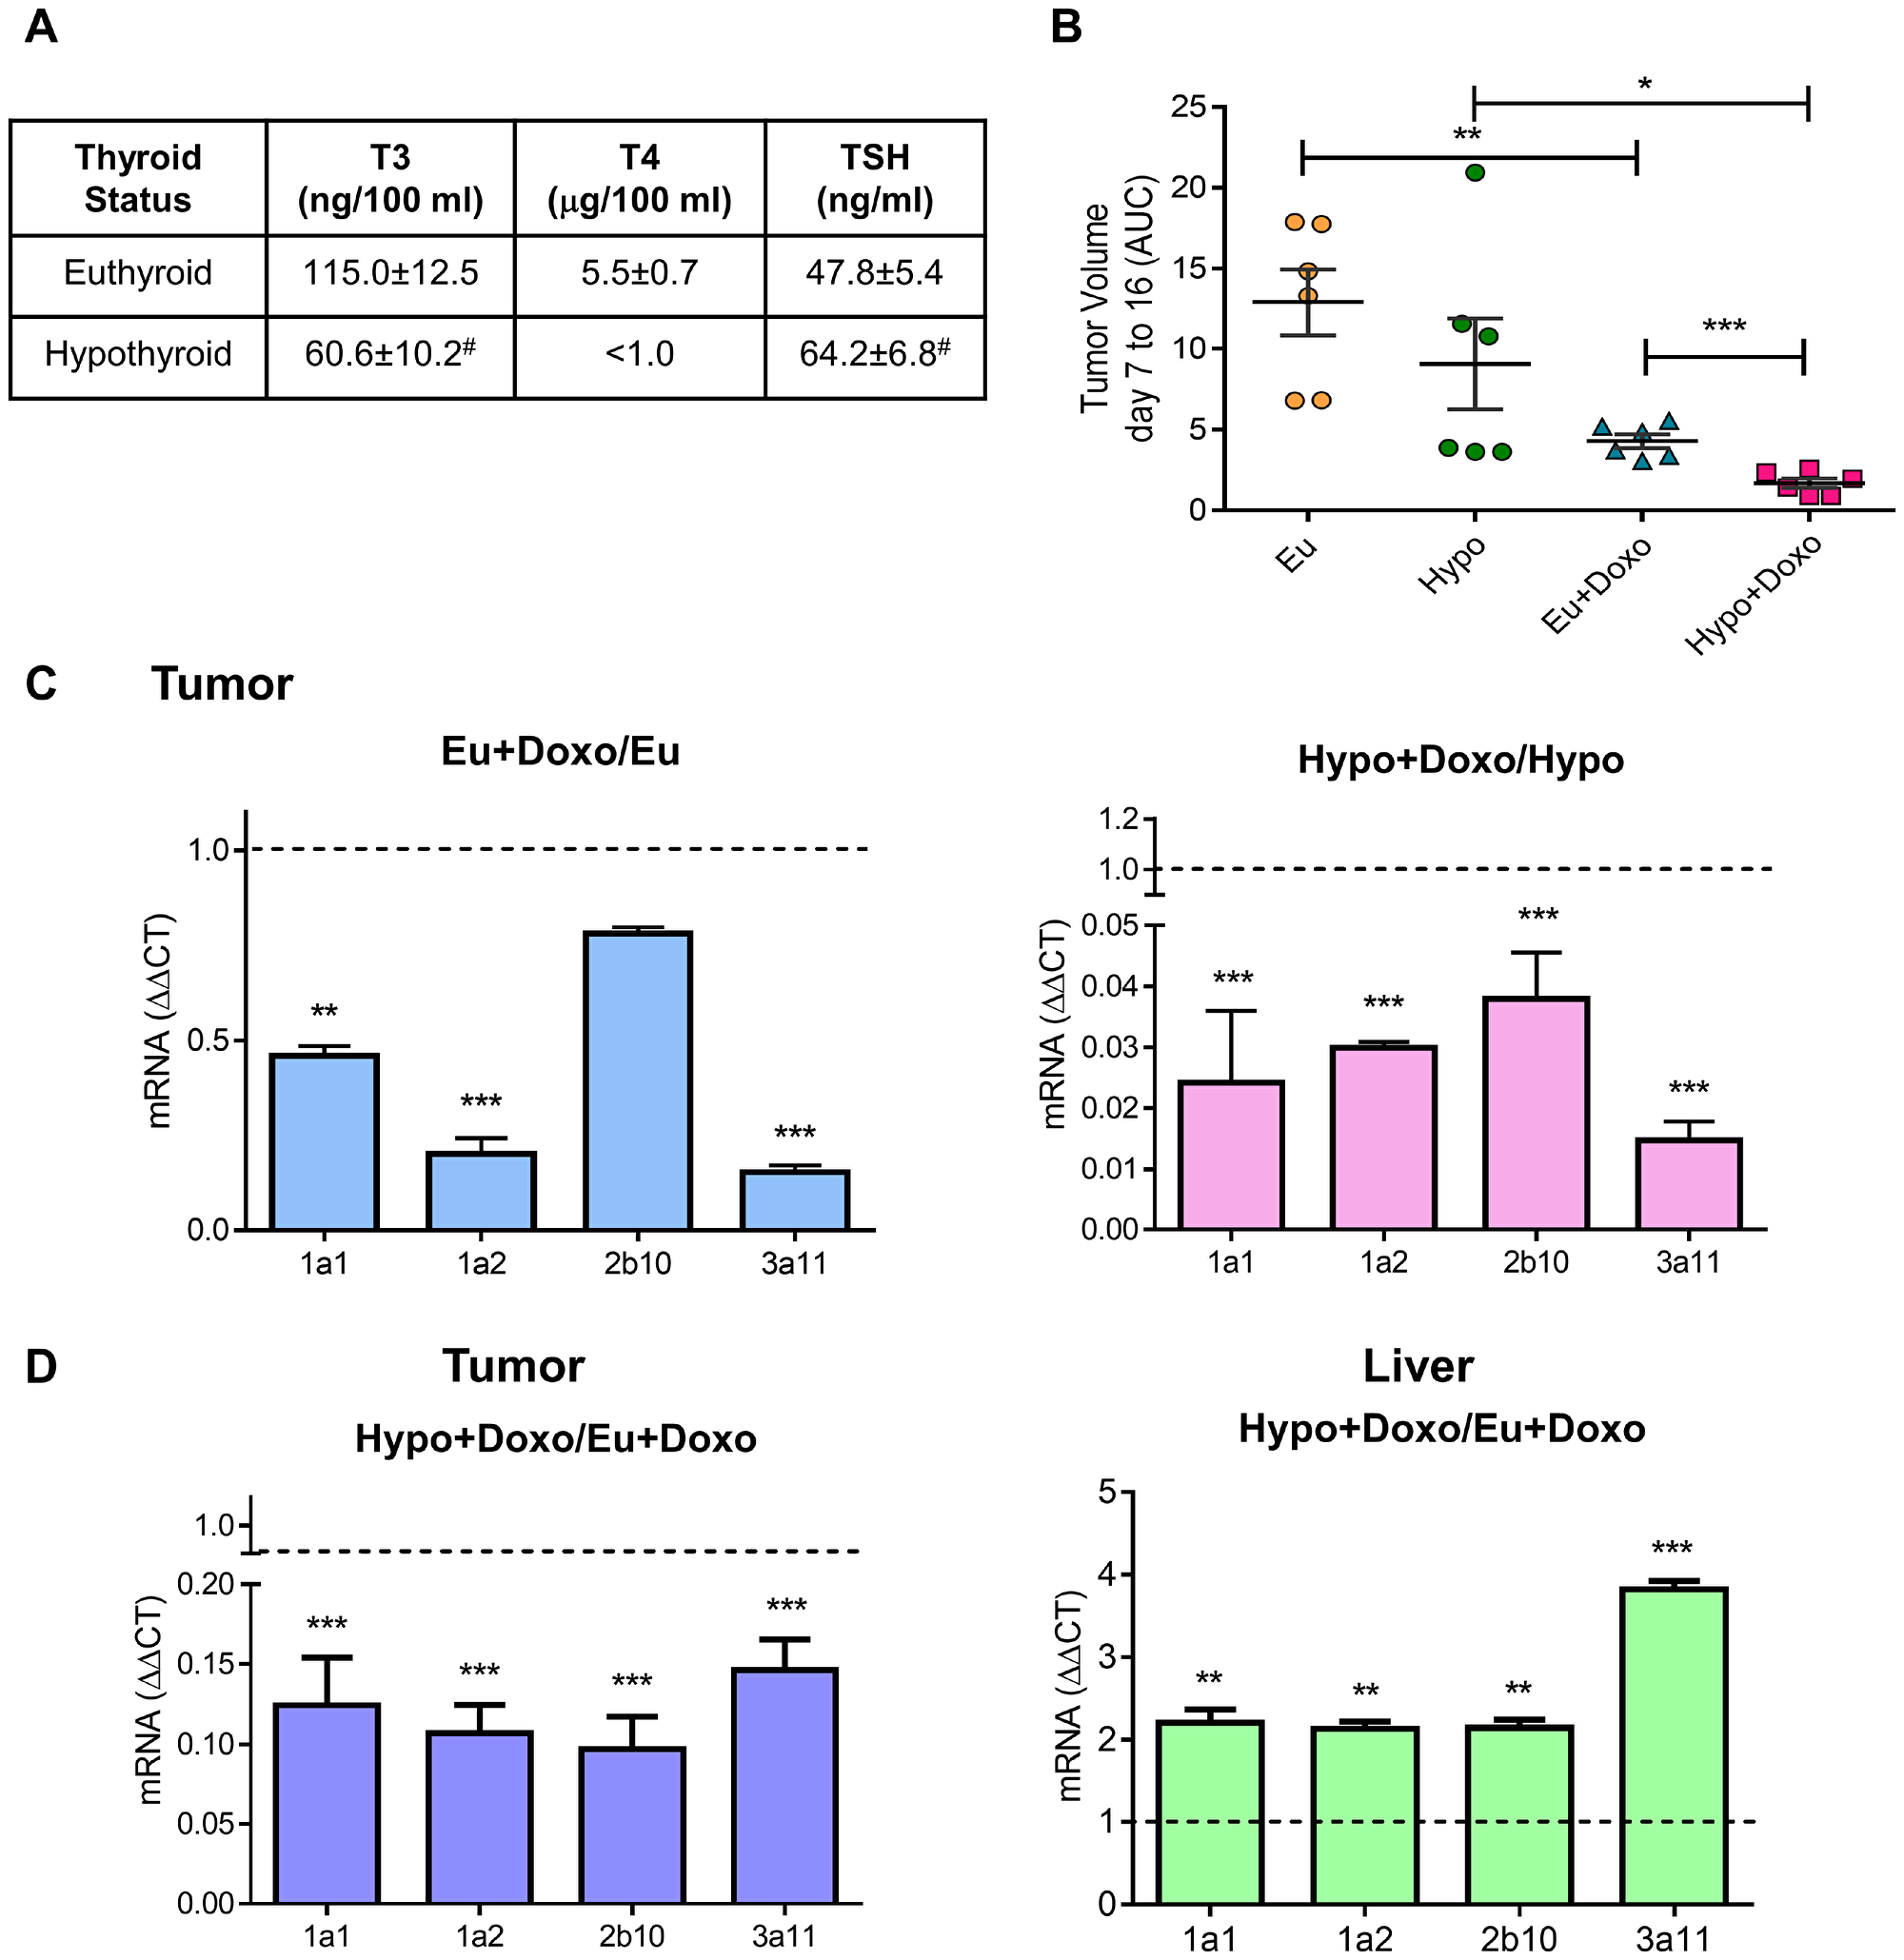 Effect of thyroid status on murine cytochrome P450 expression and tumor response to chemotherapy.